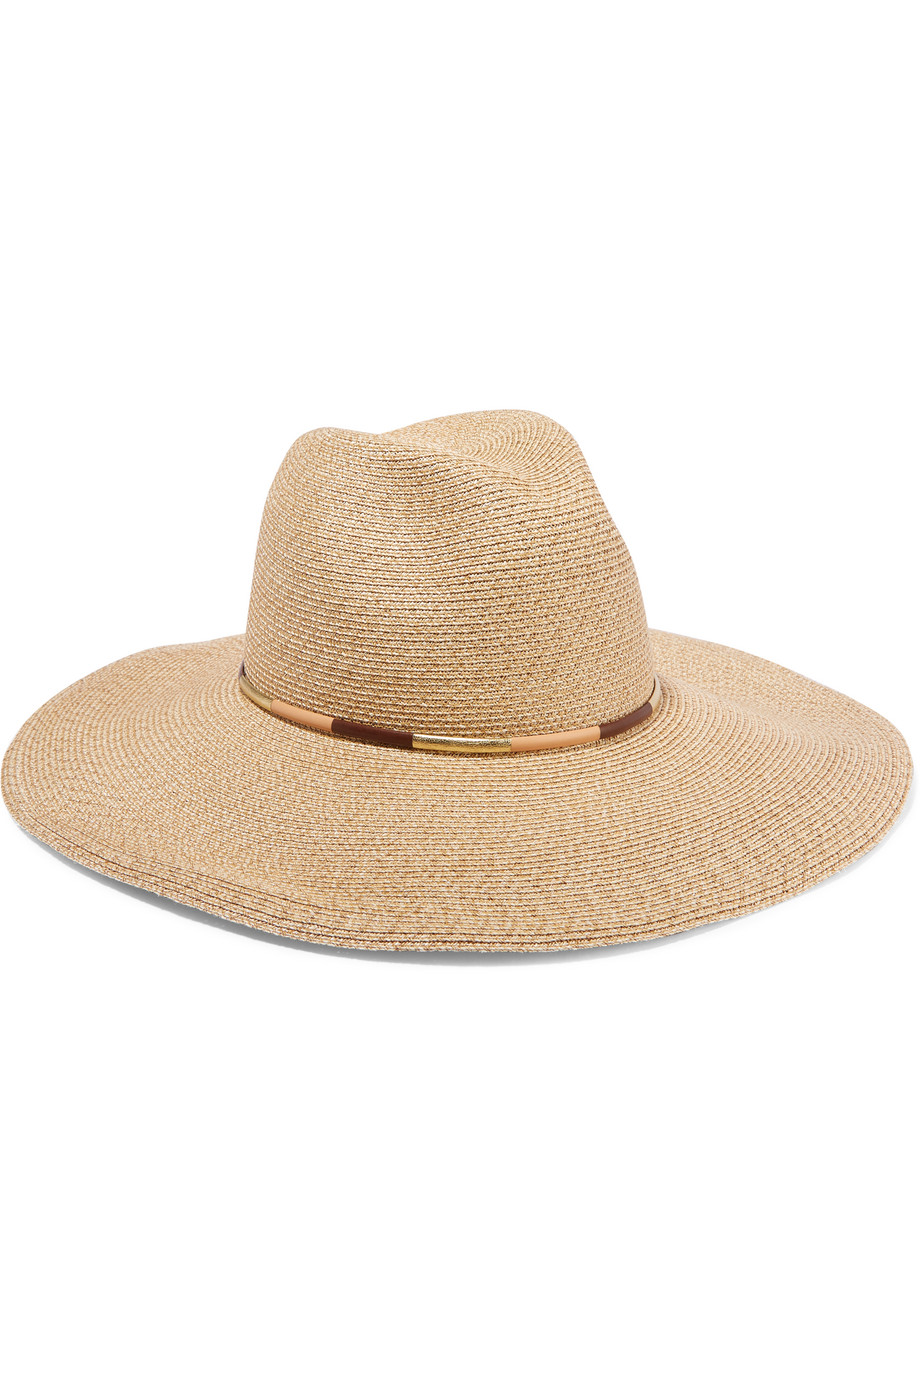 Eugenia Kim Cassidy Leather-Trimmed Toyo Sunhat, Sand, Women's